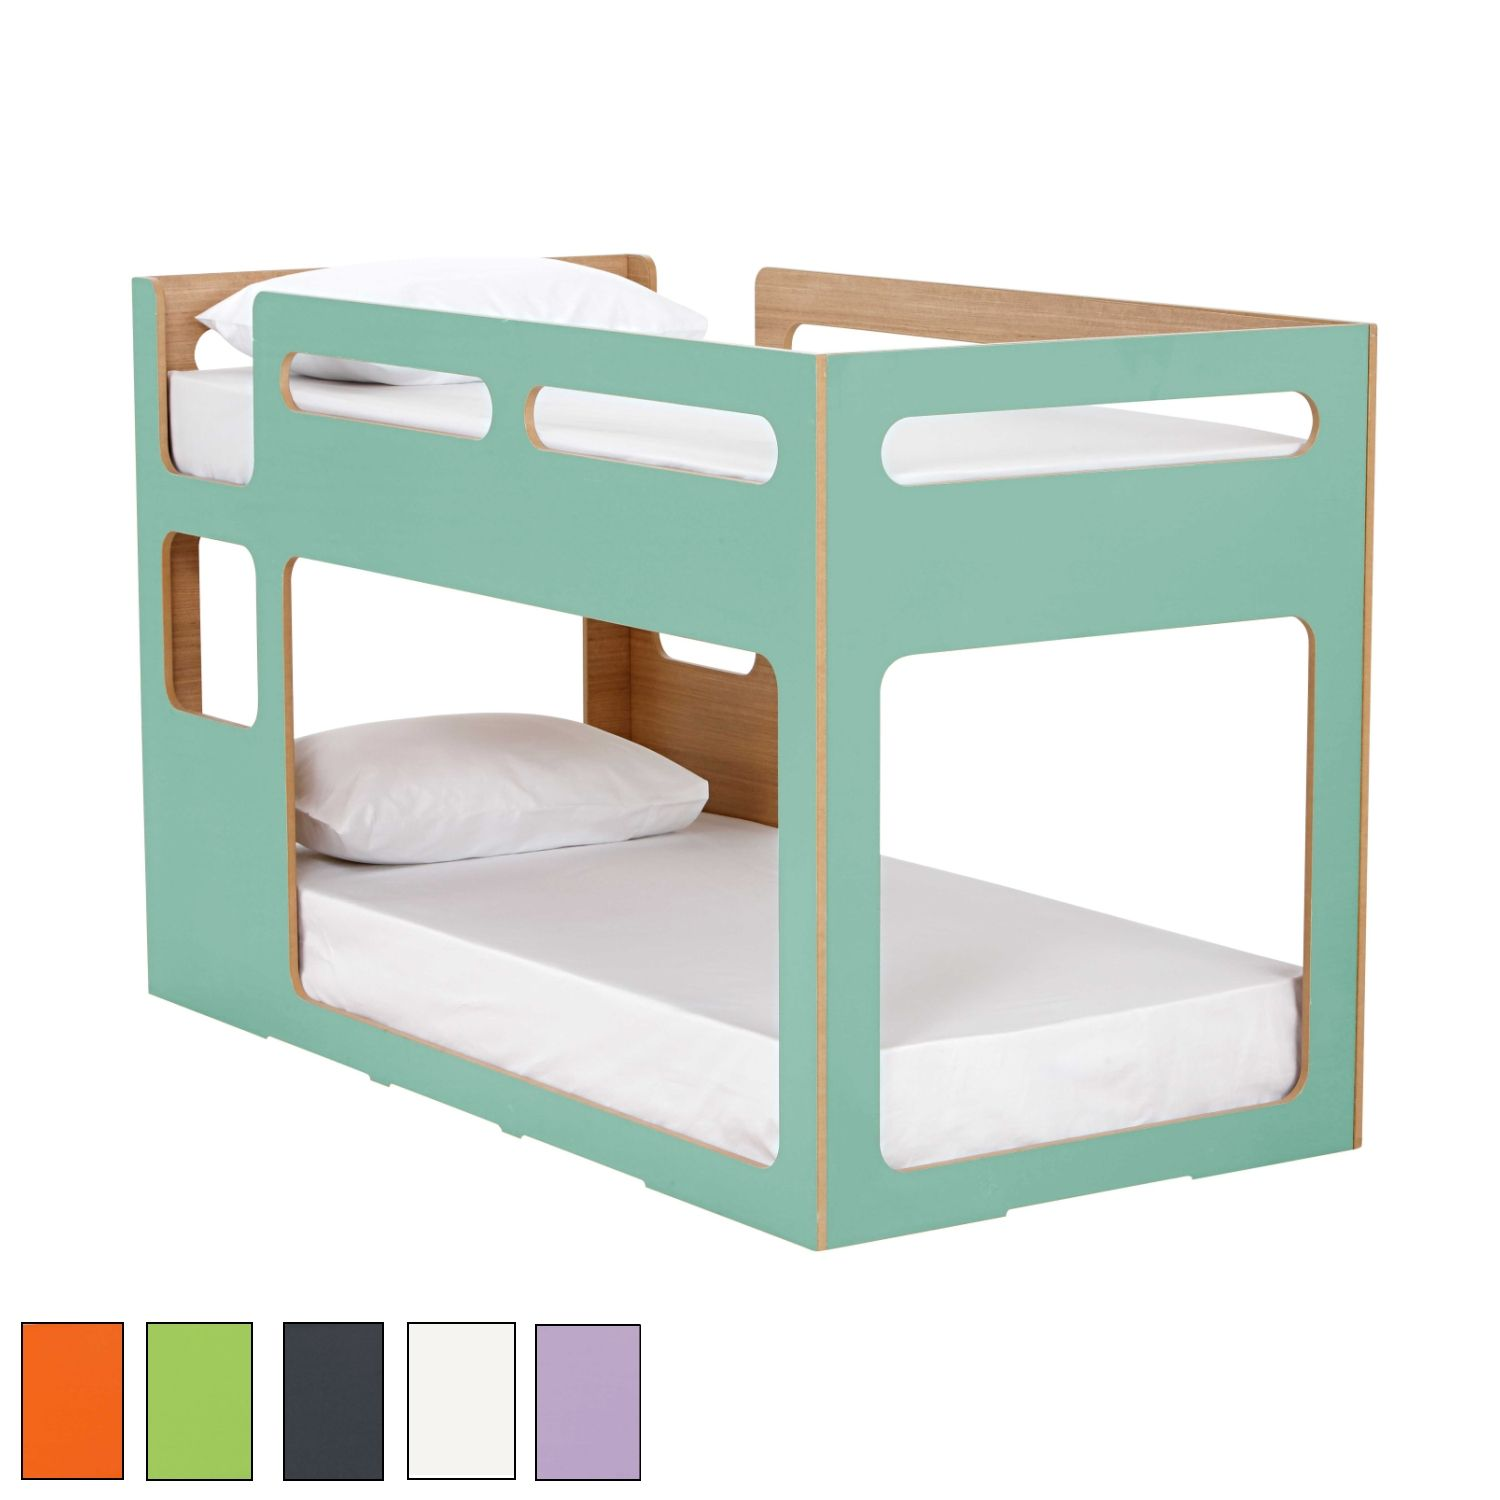 My Place Bunk Exclusive To Domayne In Two Hot New Colours